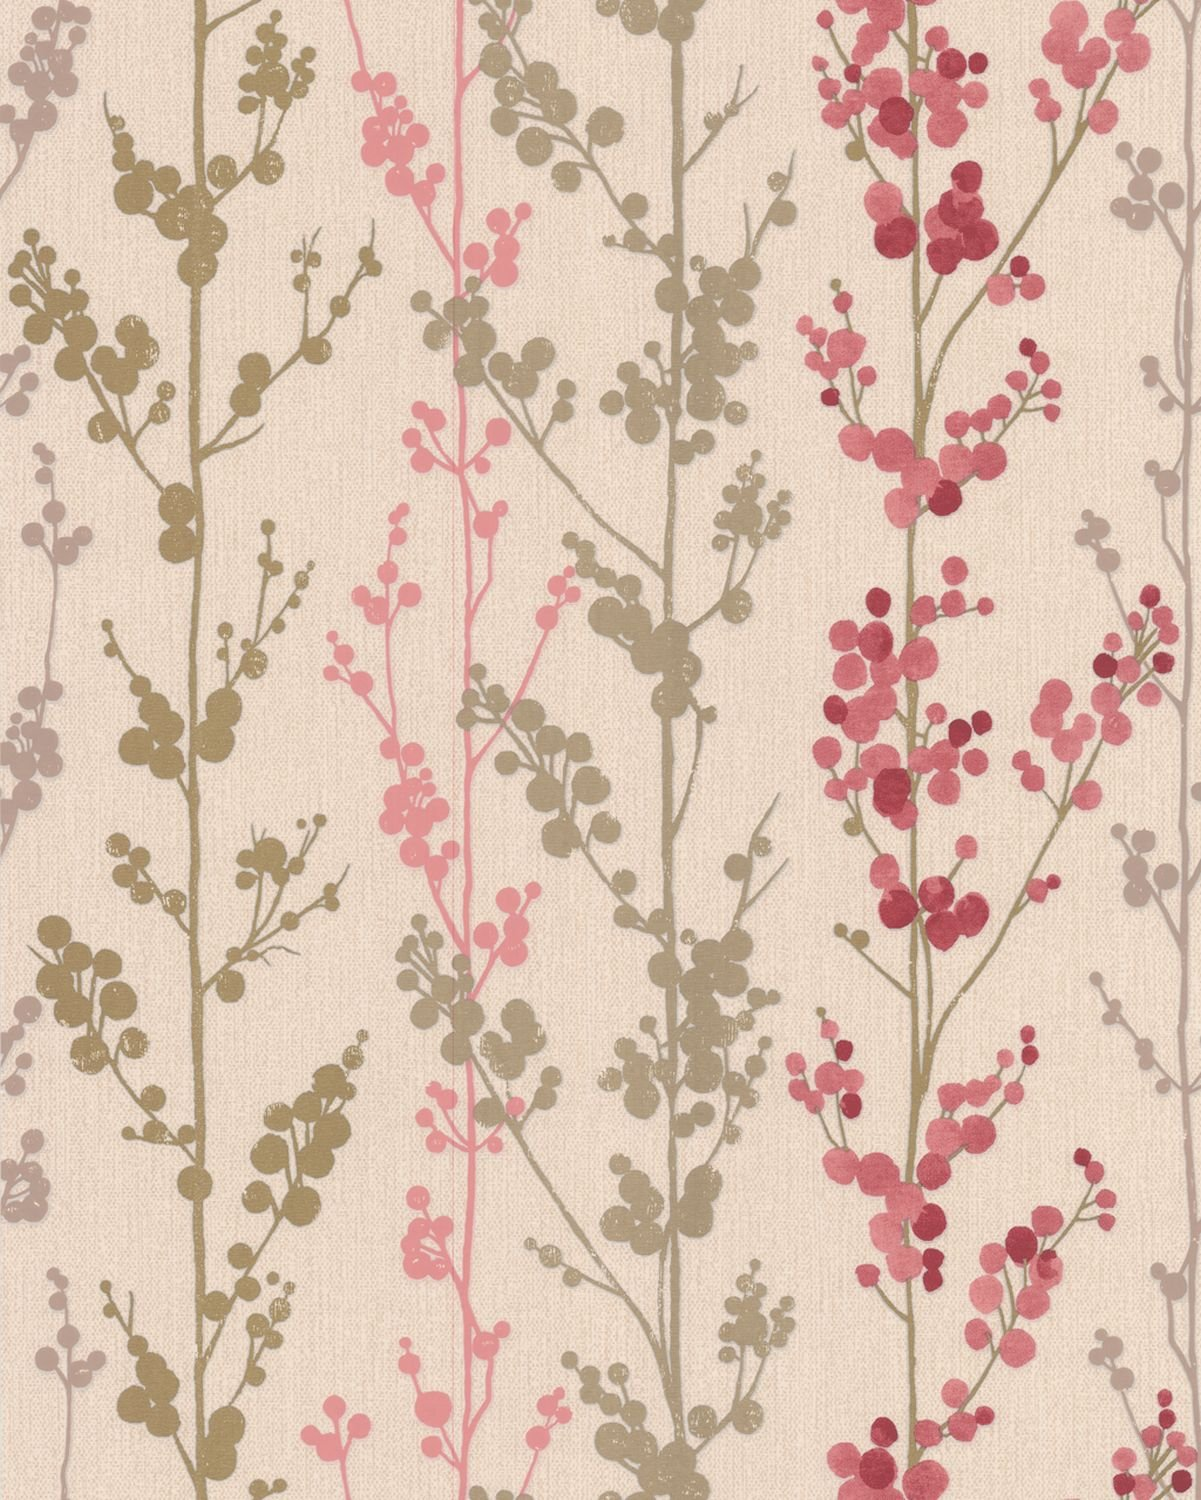 Superfresco Berries Wallpaper White 32 372 Amazoncouk DIY